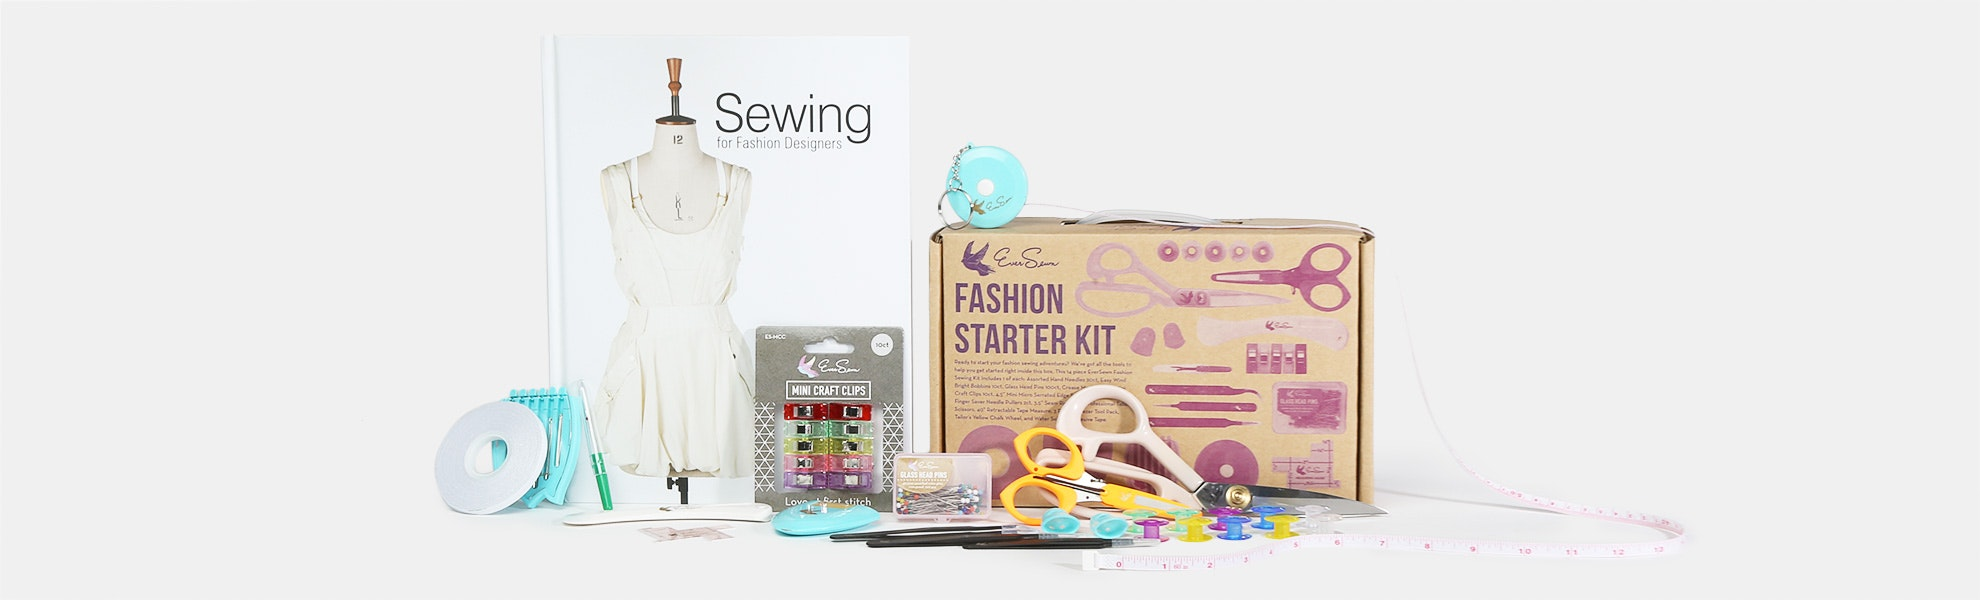 Garment Sewing Bundle